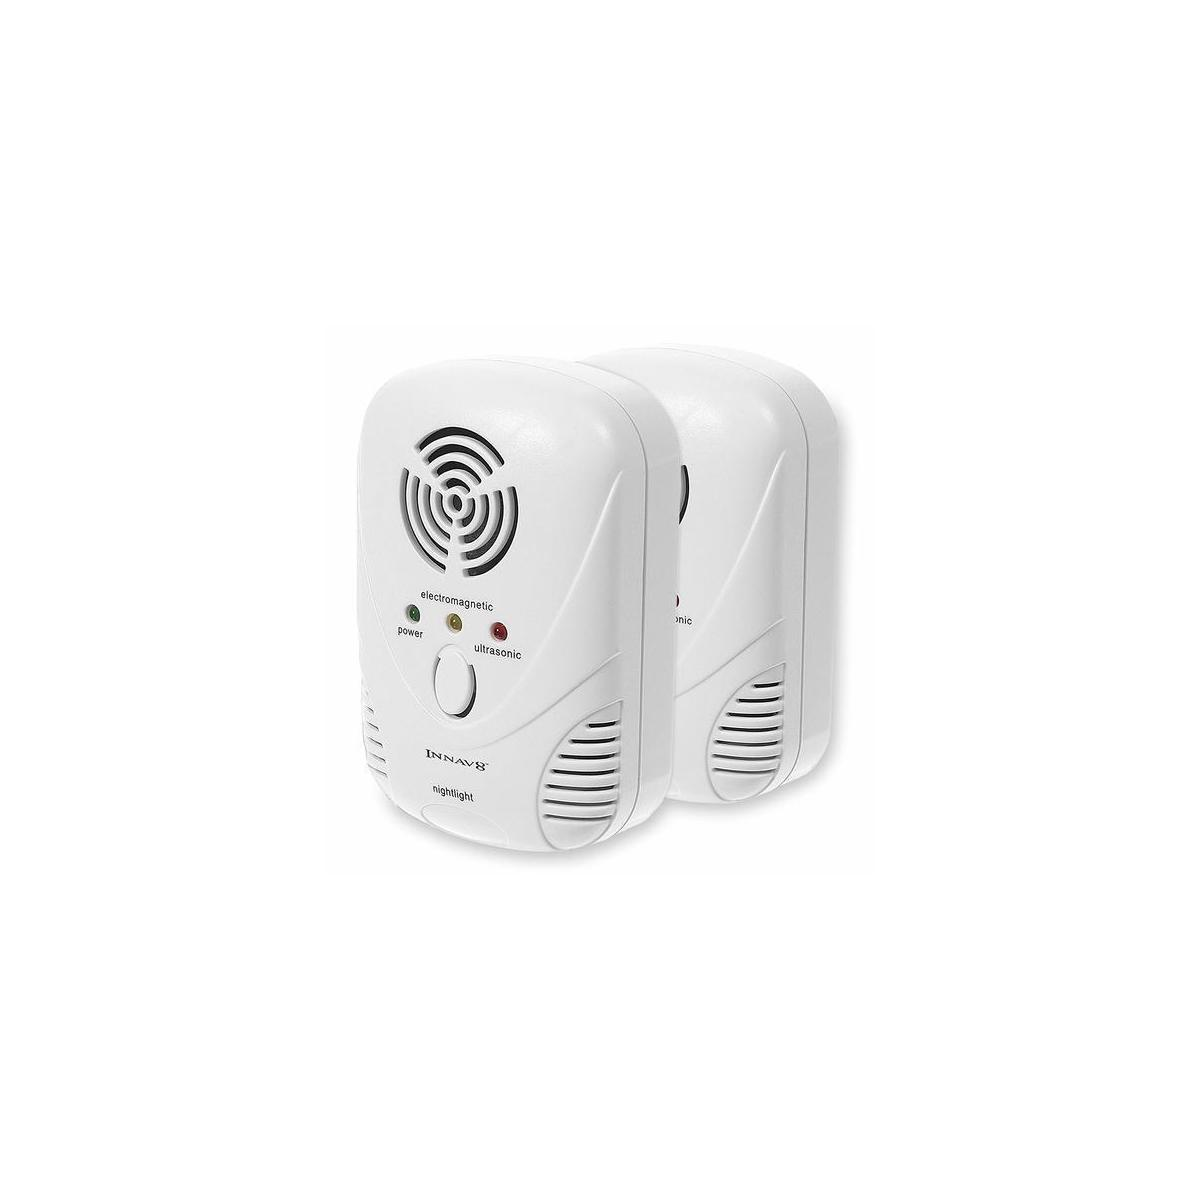 Ultrasonic Pest Repeller, Plug-in